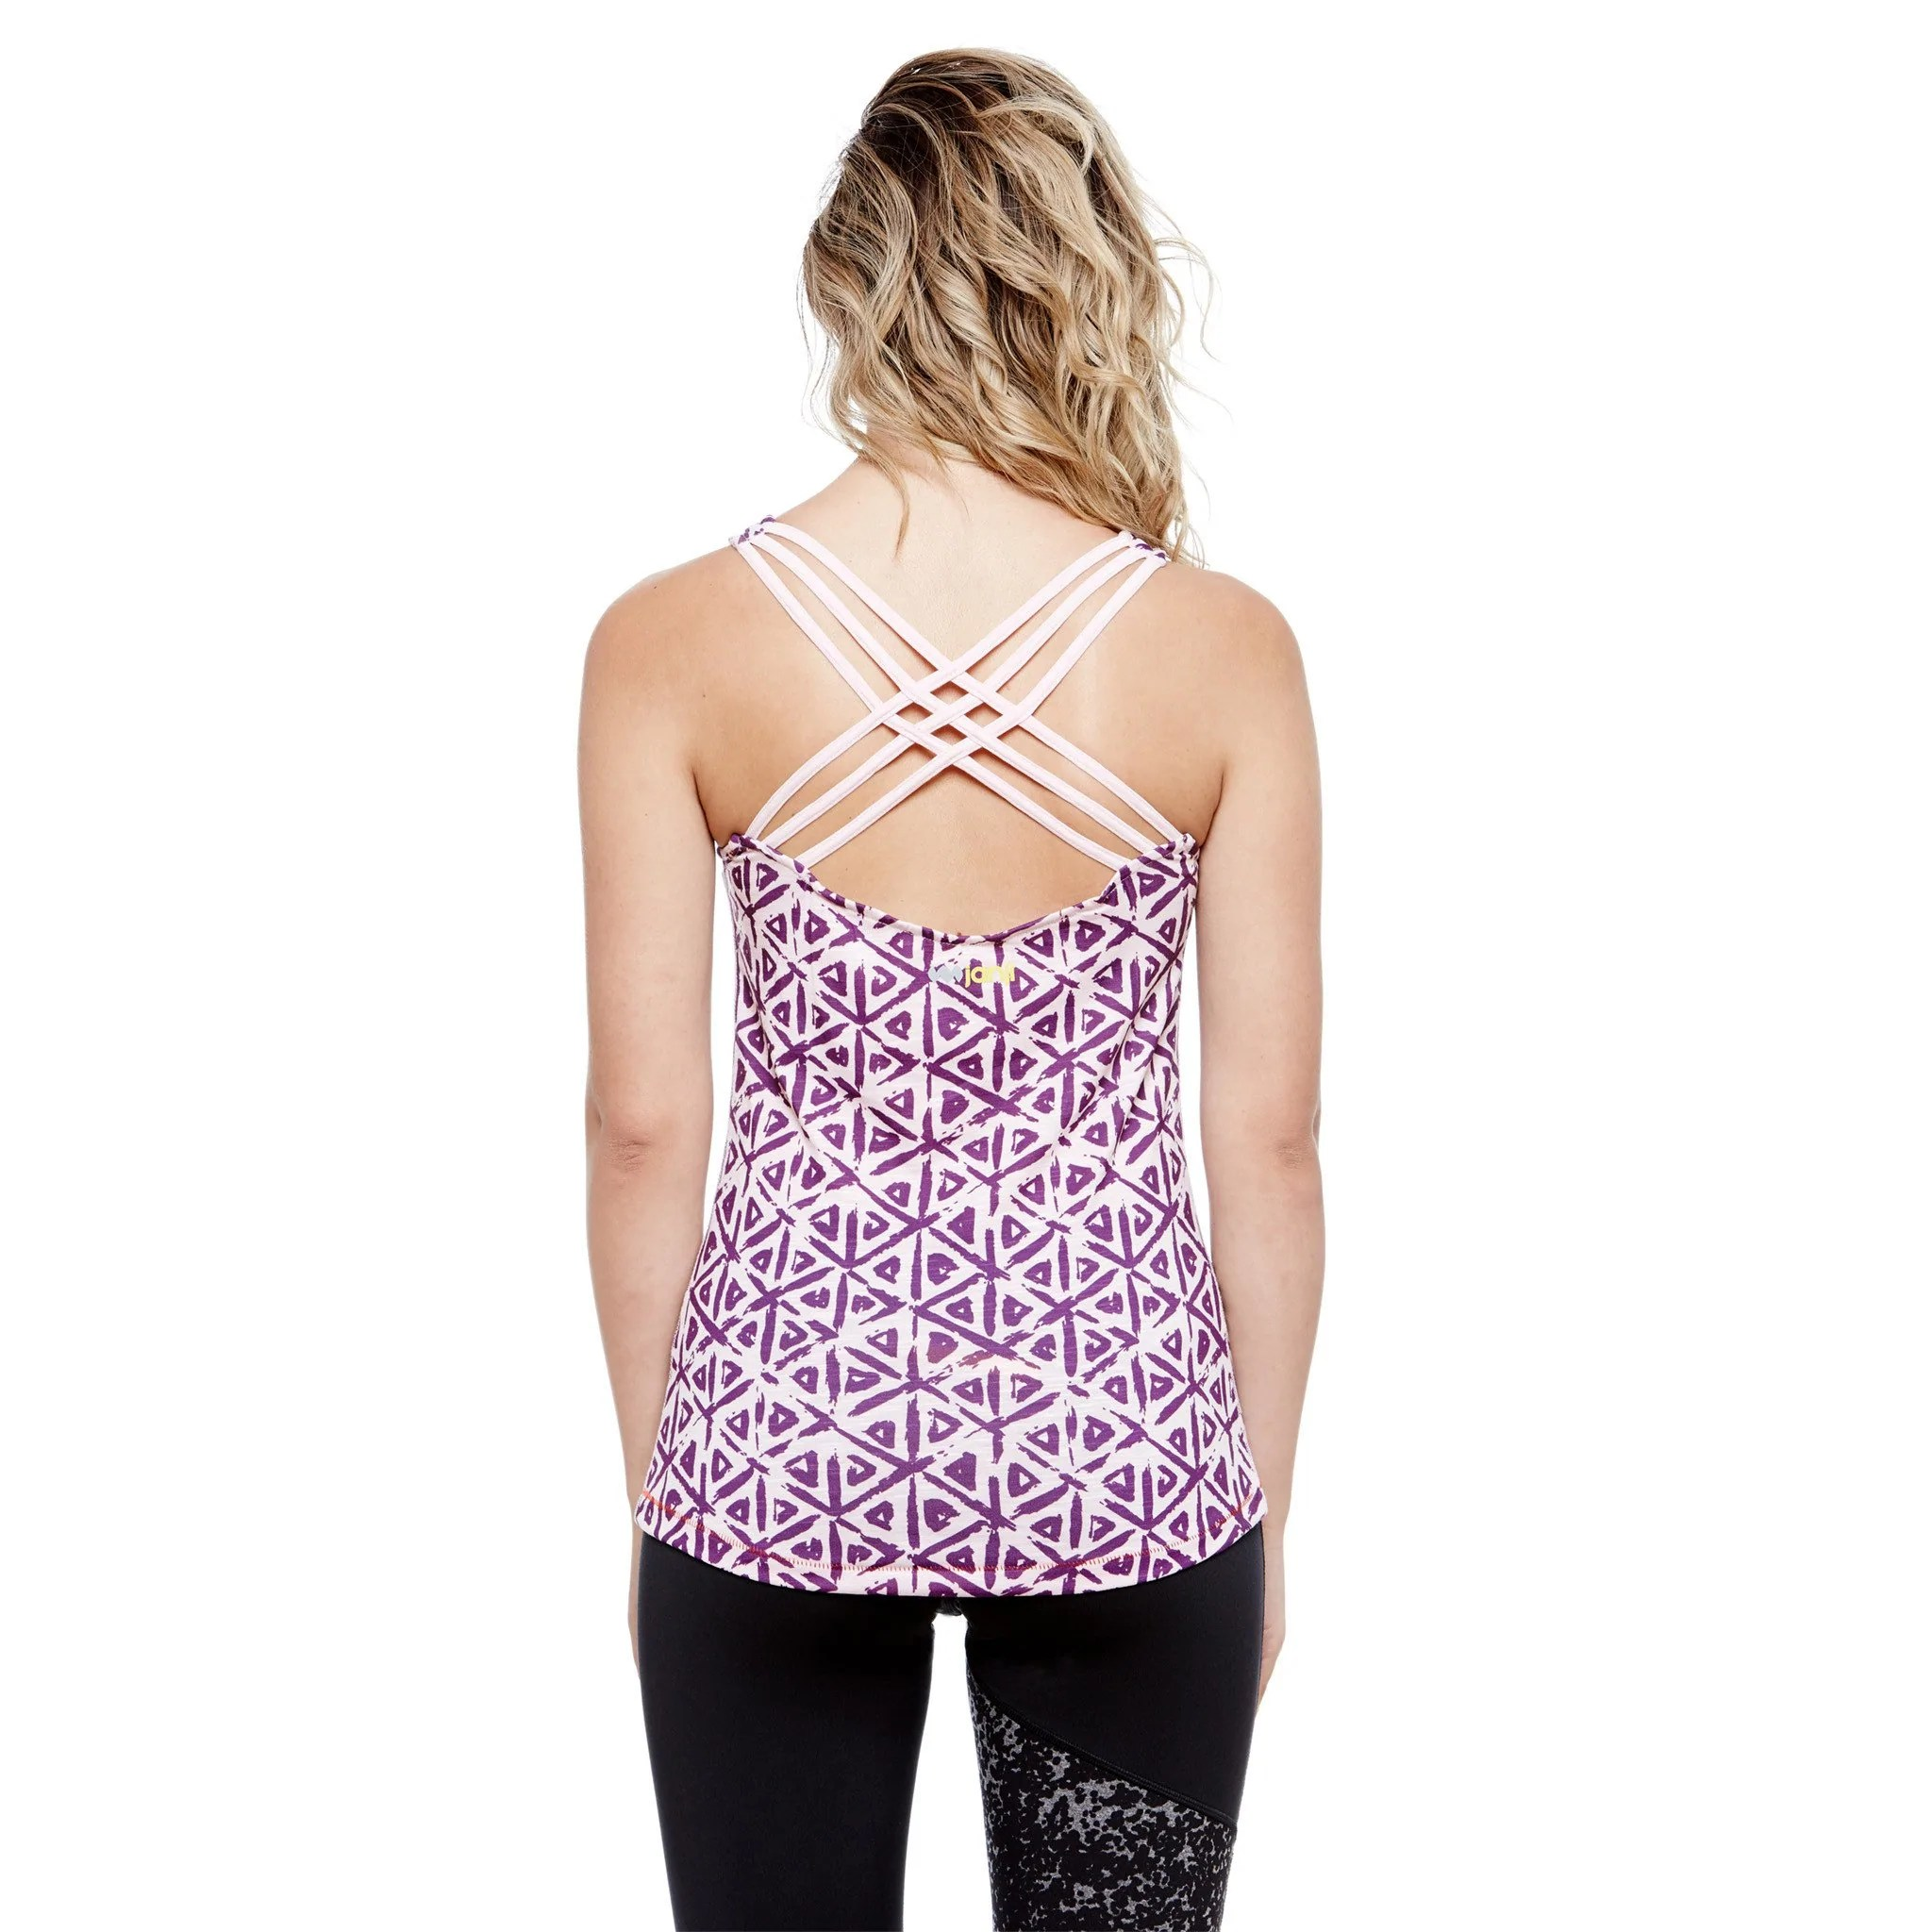 The Nyali Tank has a cute and functional open flow design on the back.